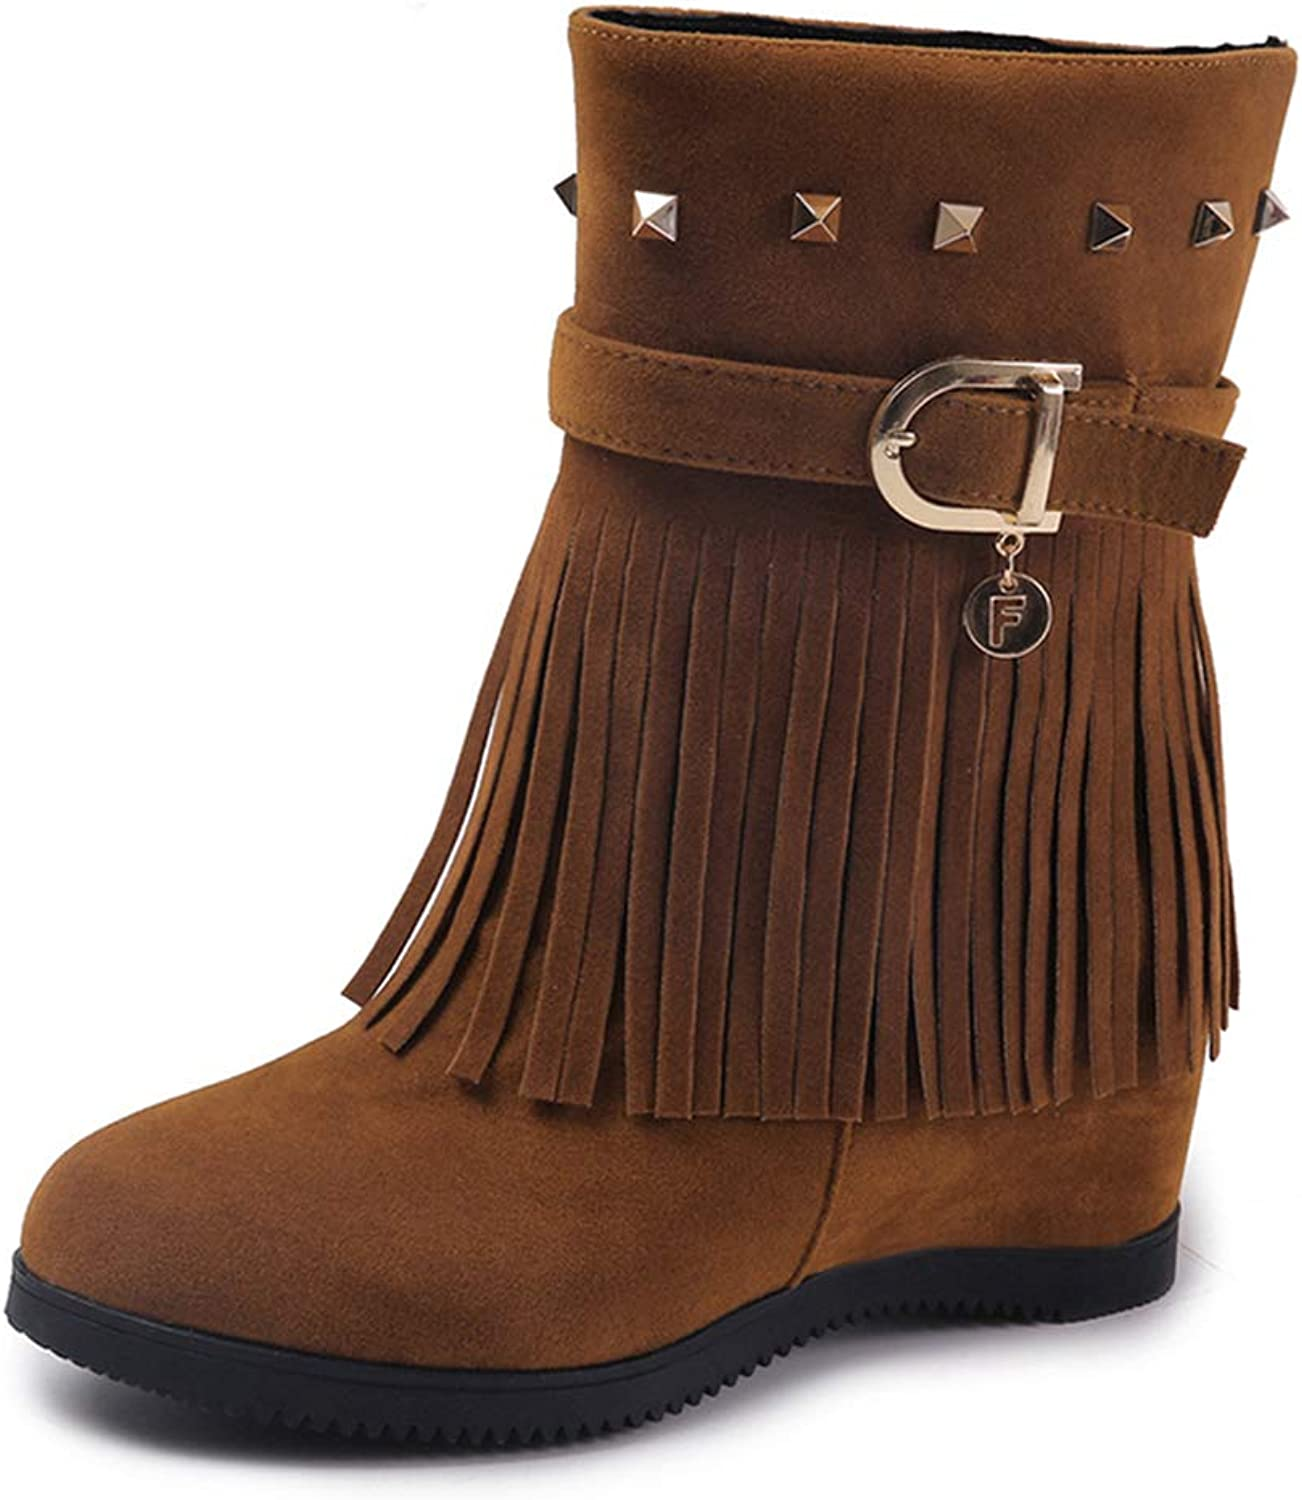 T-JULY Black Belt Buckle Height Increasing Fringe Rivet shoes for Women Casual Autumn Winter Mid Calf Boots